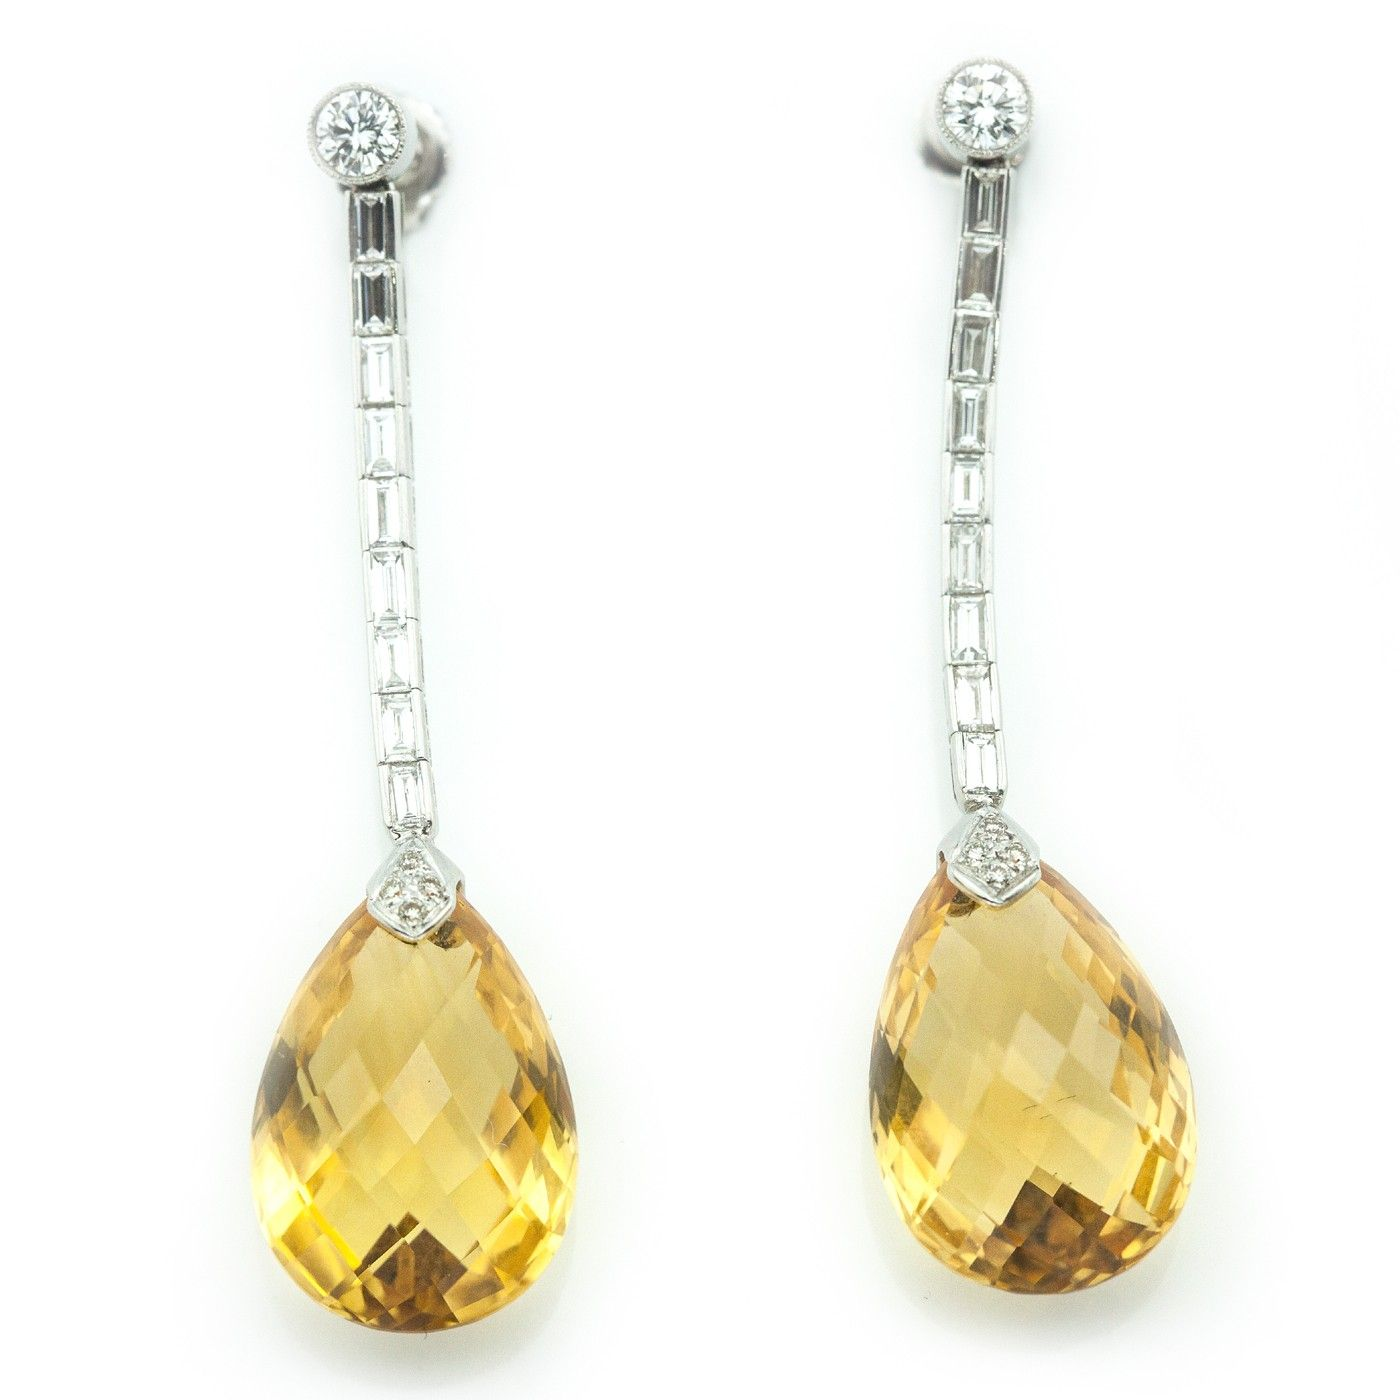 Platinum Earrings with Diamonds and Citrine Drops